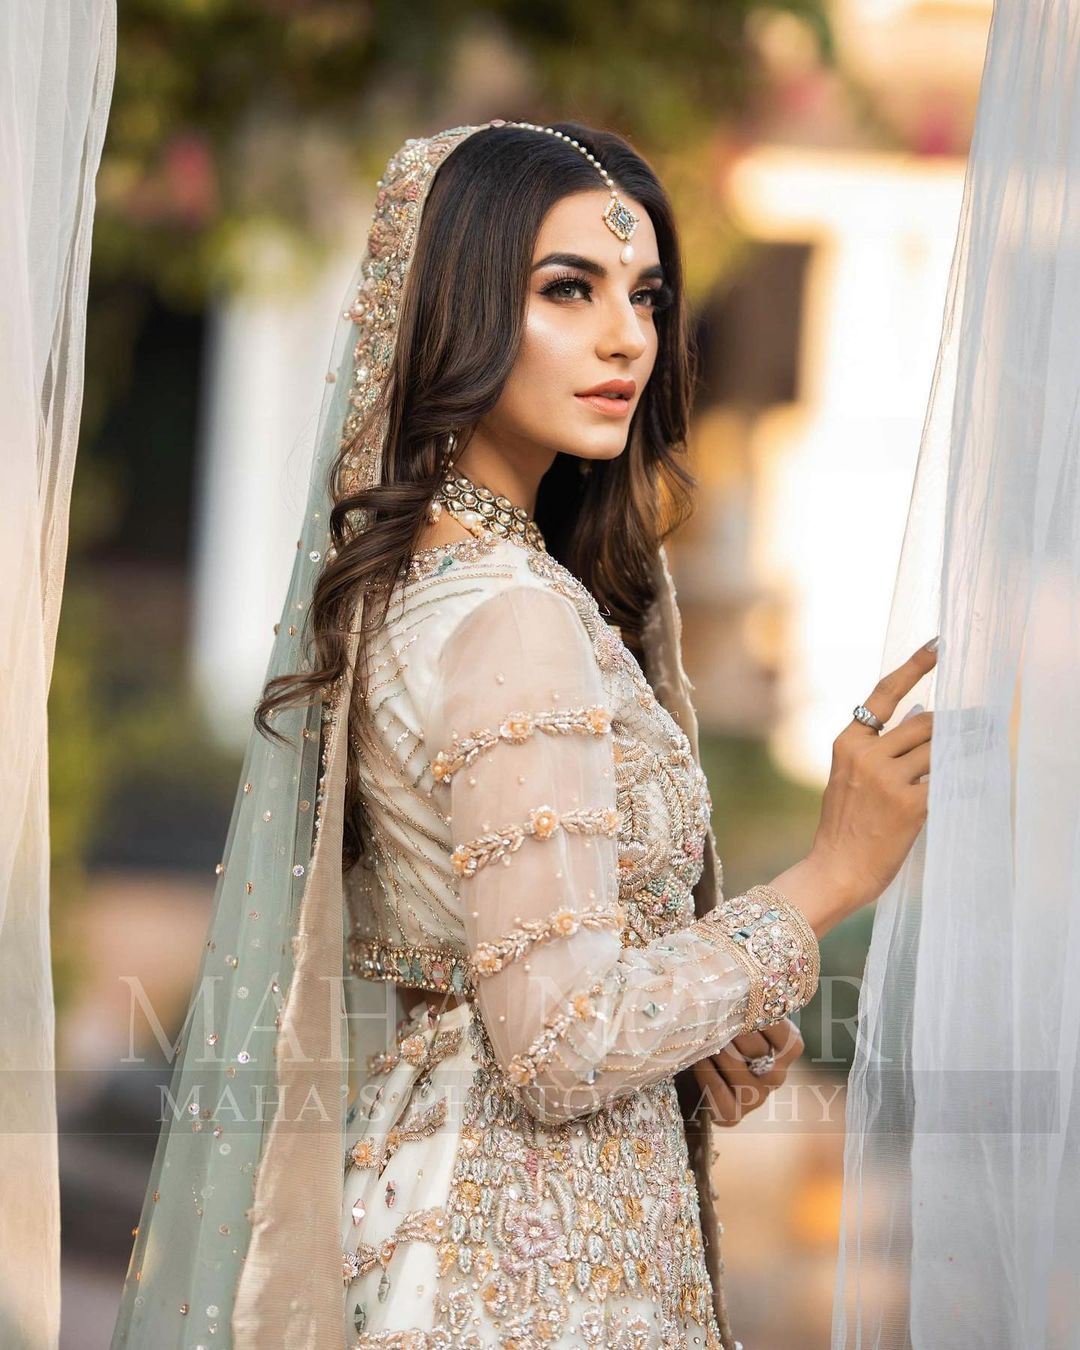 Sadia Khan is Looking Stunning in her Latest Bridal Makeup Shoot